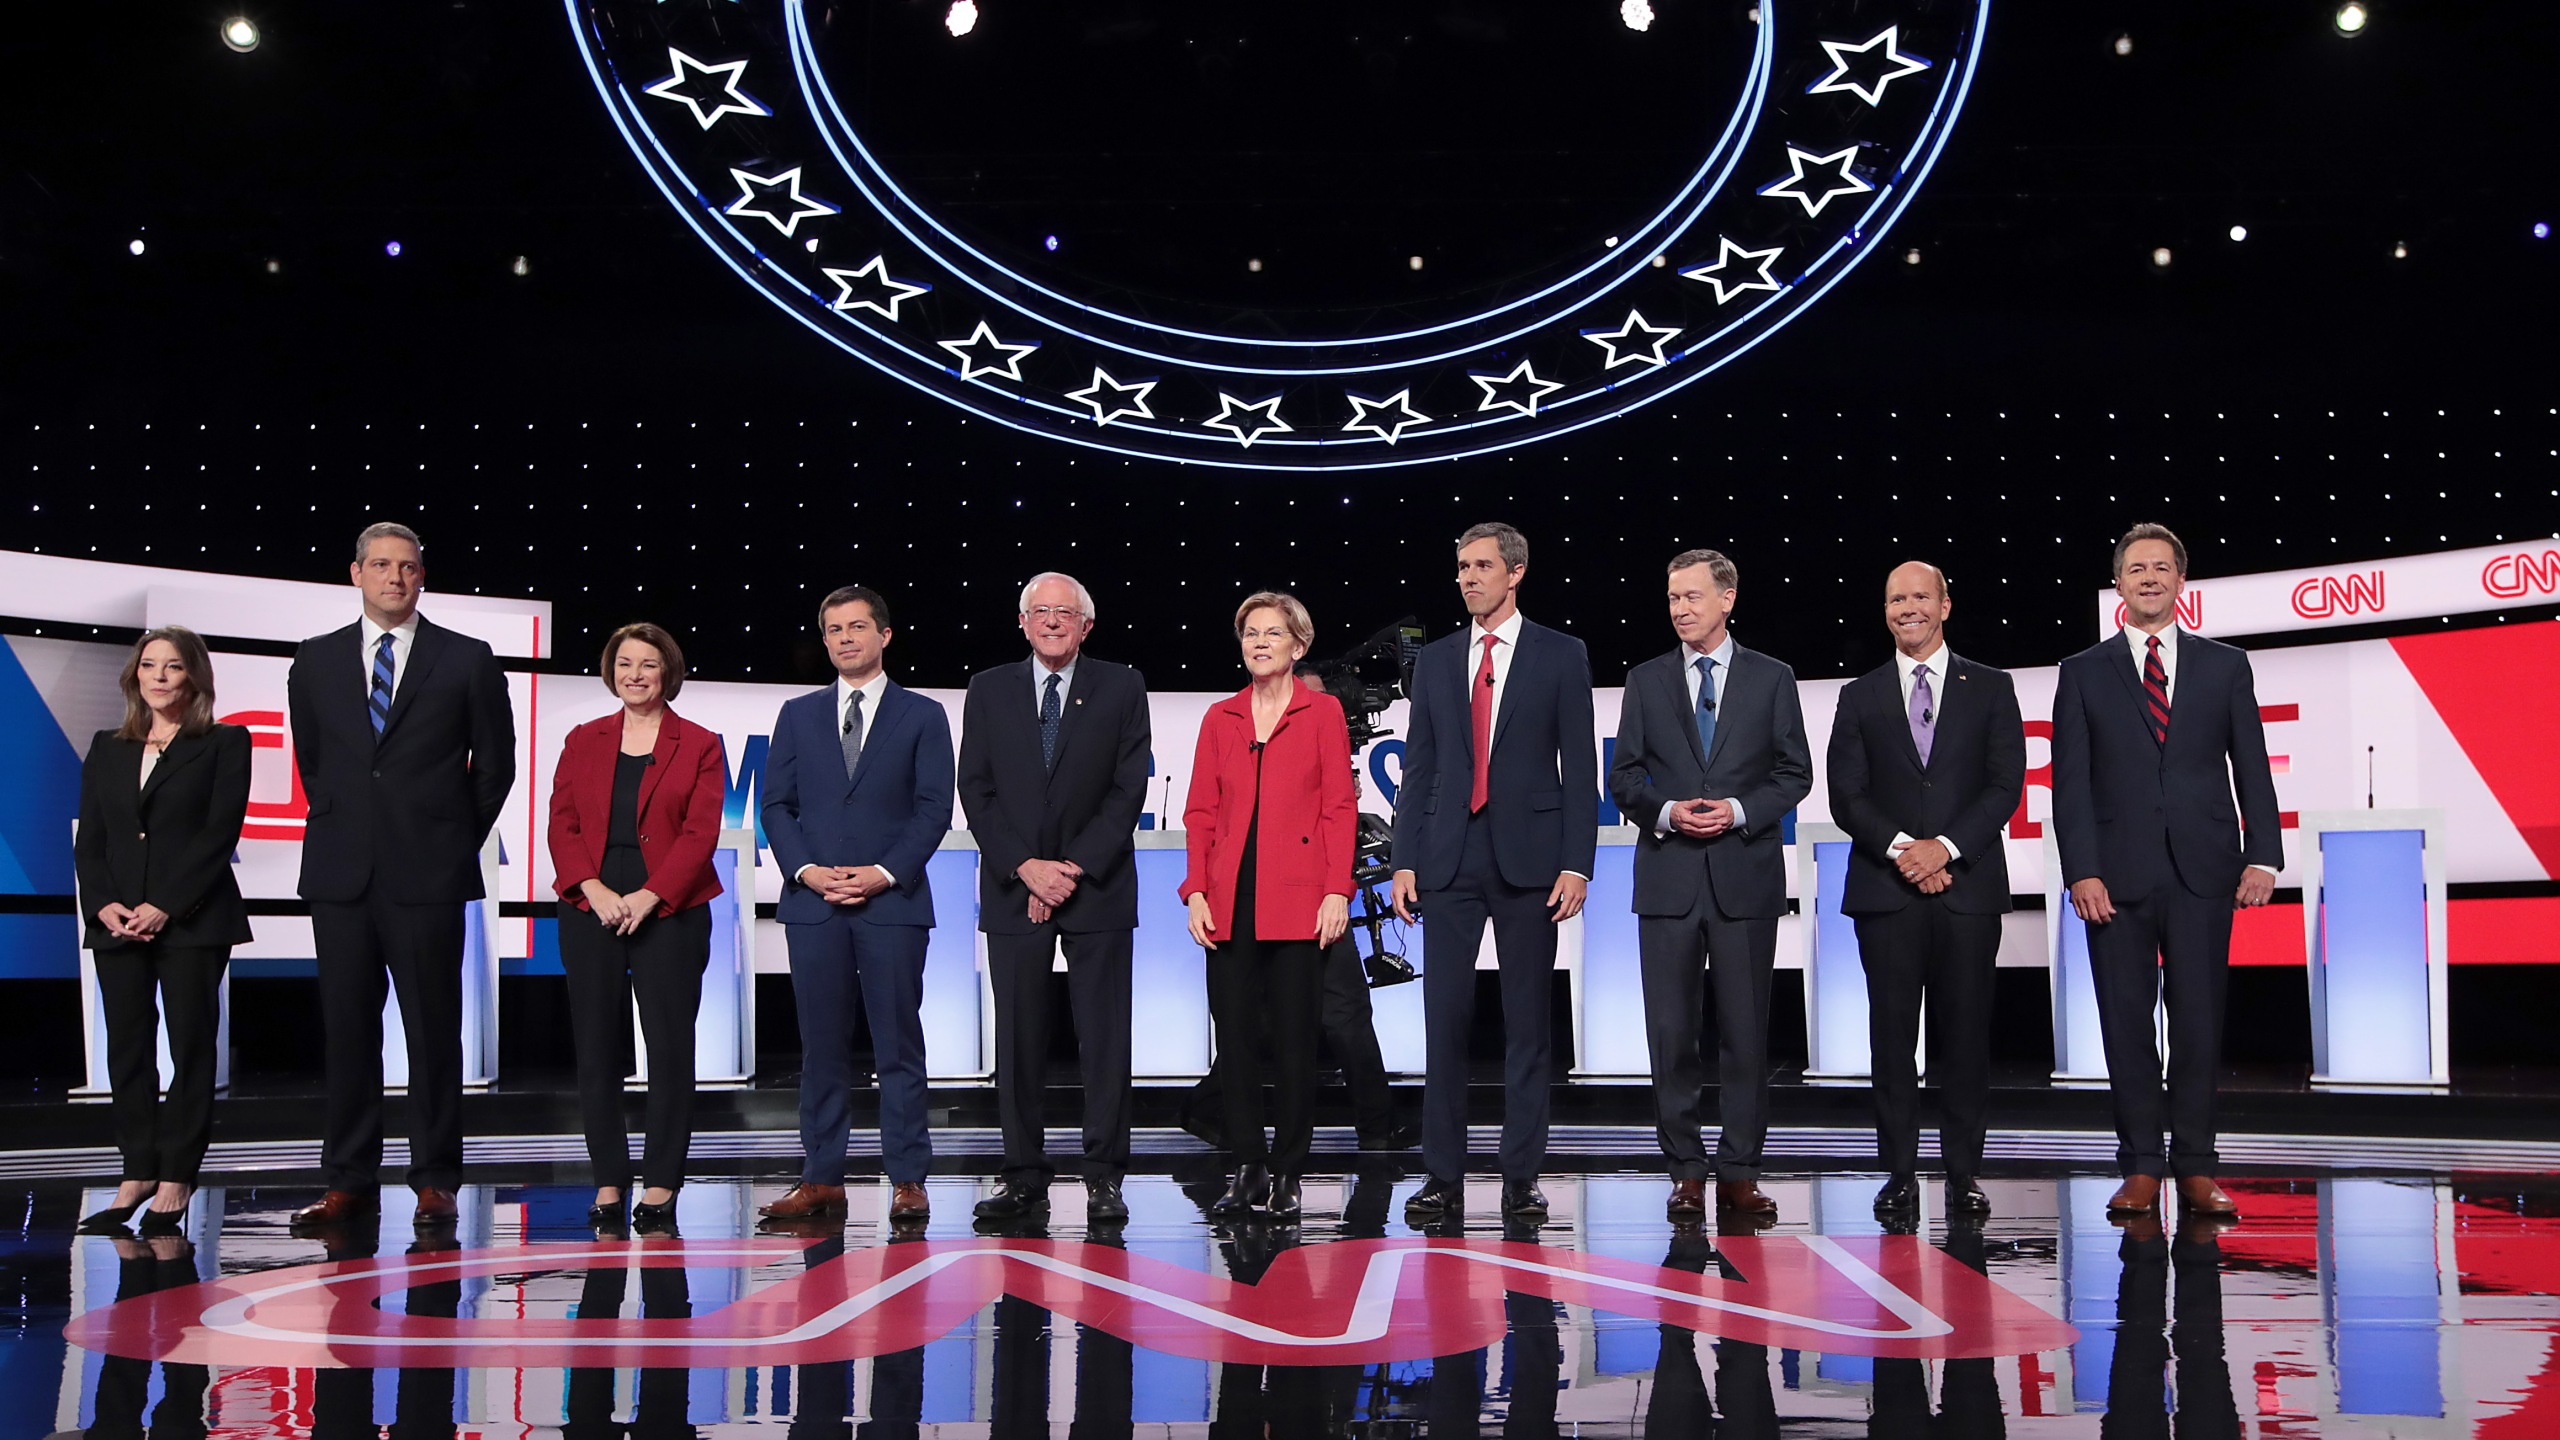 From left: Democratic presidential candidates Marianne Williamson, Rep. Tim Ryan, Sen. Amy Klobuchar, Indiana Mayor Pete Buttigieg, Sen. Bernie Sanders, Sen. Elizabeth Warren, former Texas congressman Beto O'Rourke, former Colorado governor John Hickenlooper, former Maryland congressman John Delaney and Montana Gov. Steve Bullock take the stage at the beginning of a CNN-hosted in Detroit on July 30, 2019. (Credit: Scott Olson / Getty Images)